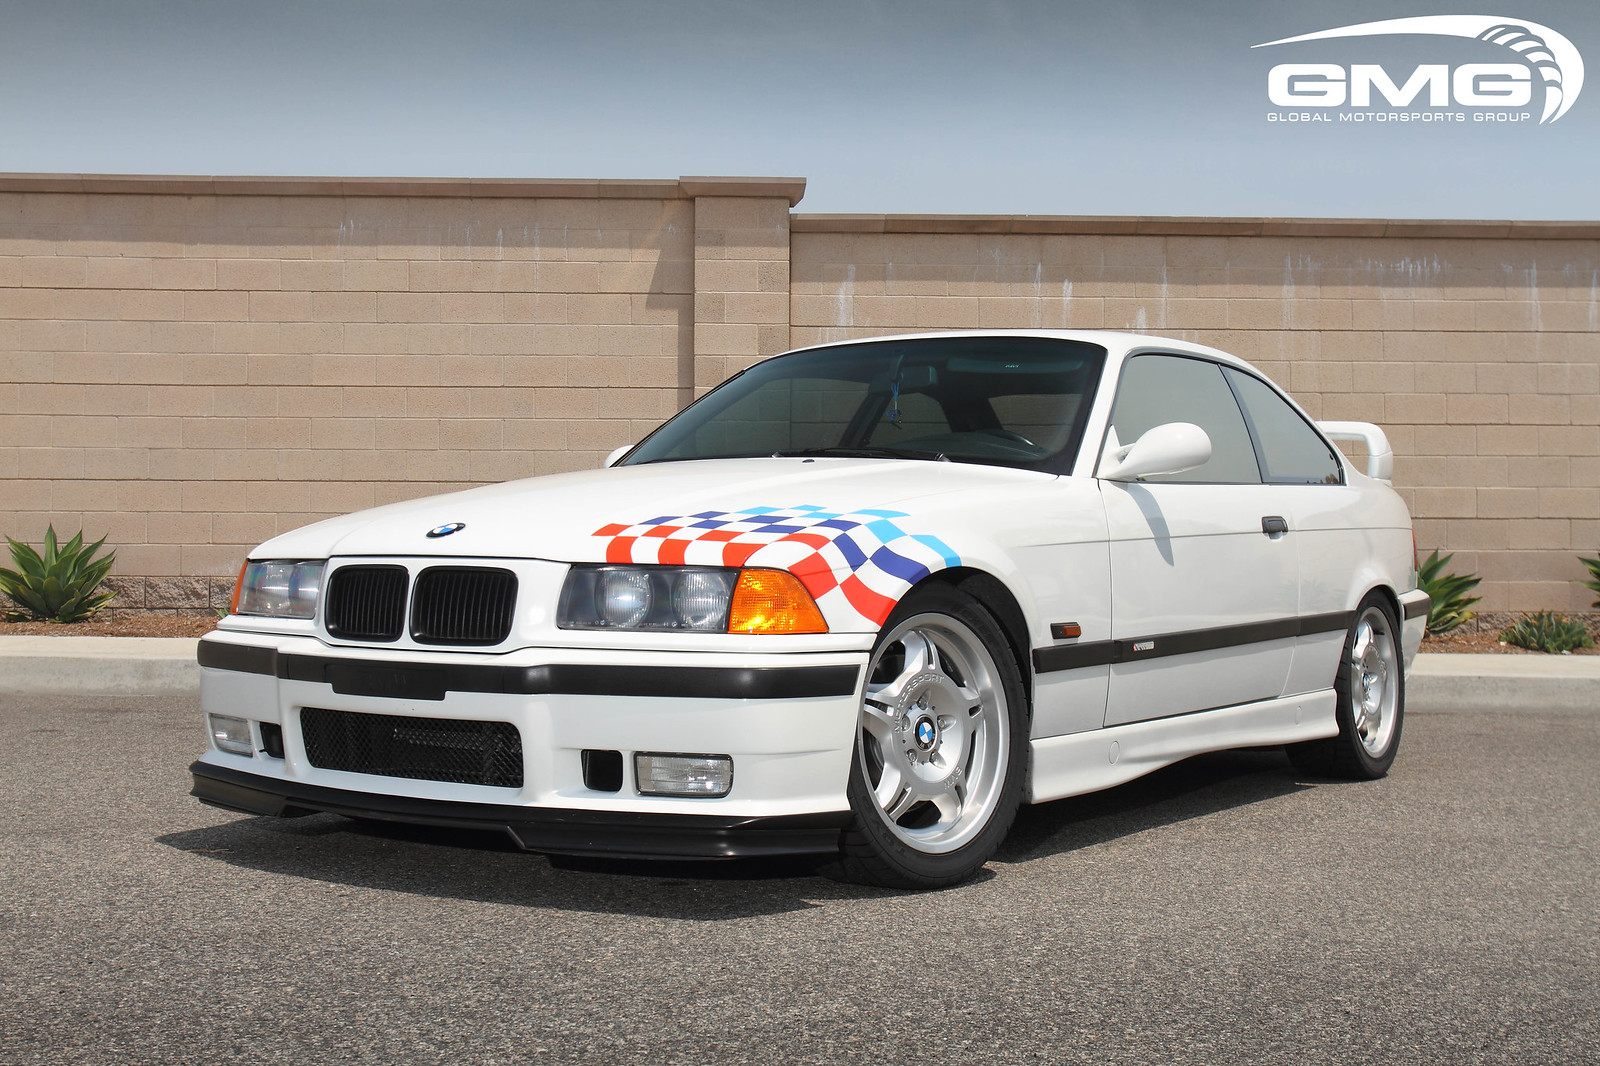 rare 1995 e36 bmw m3 lightweight at gmg racing rennlist. Black Bedroom Furniture Sets. Home Design Ideas